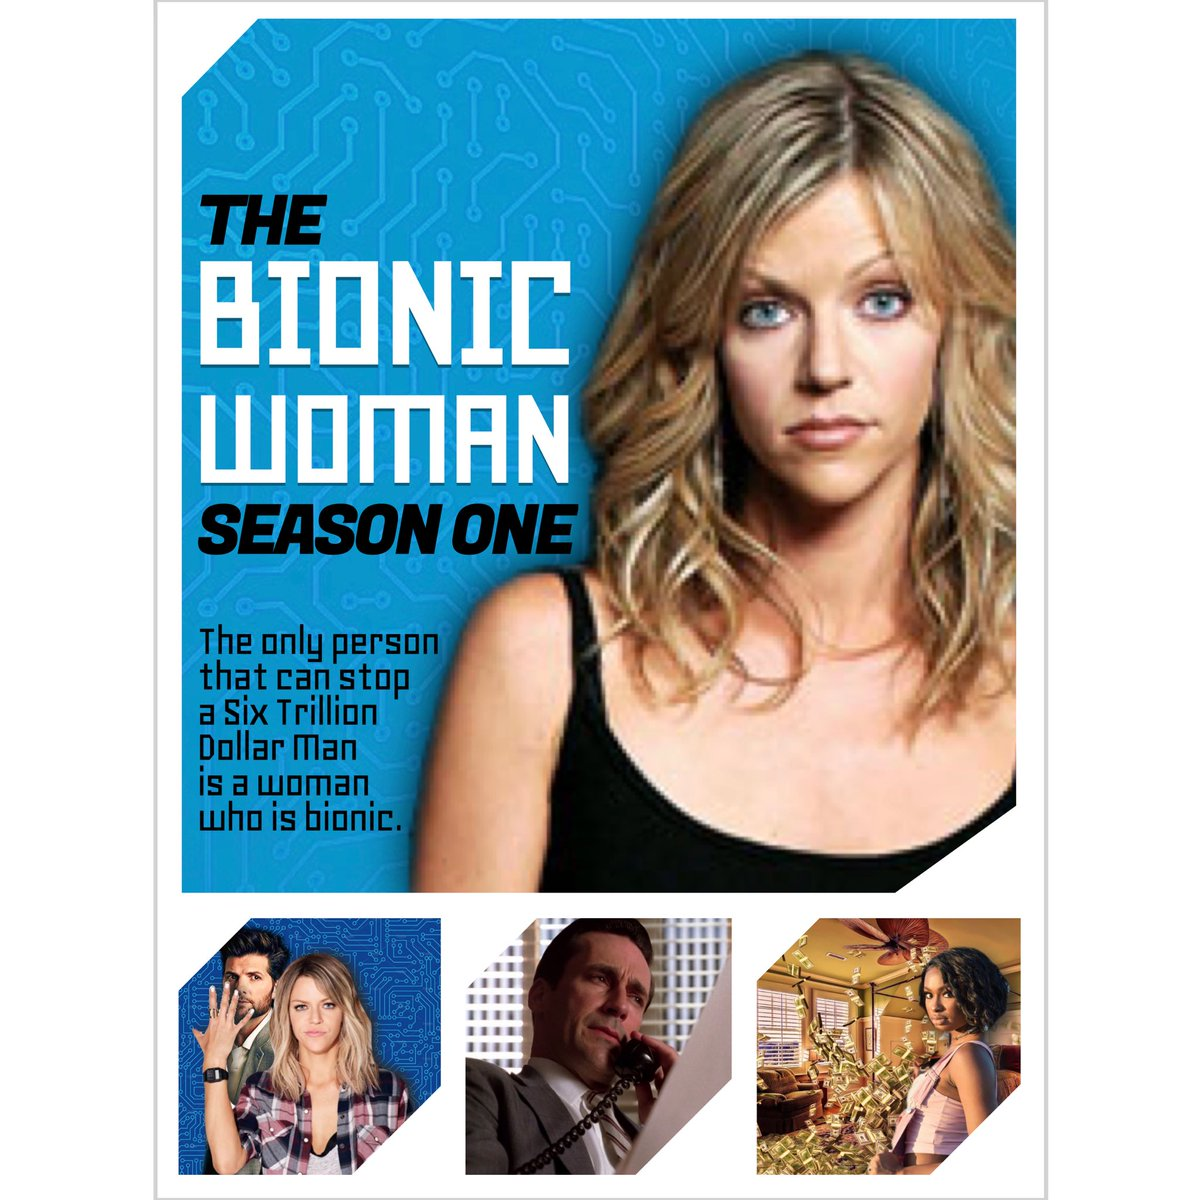 Are you guys watching this? #BionicWoman